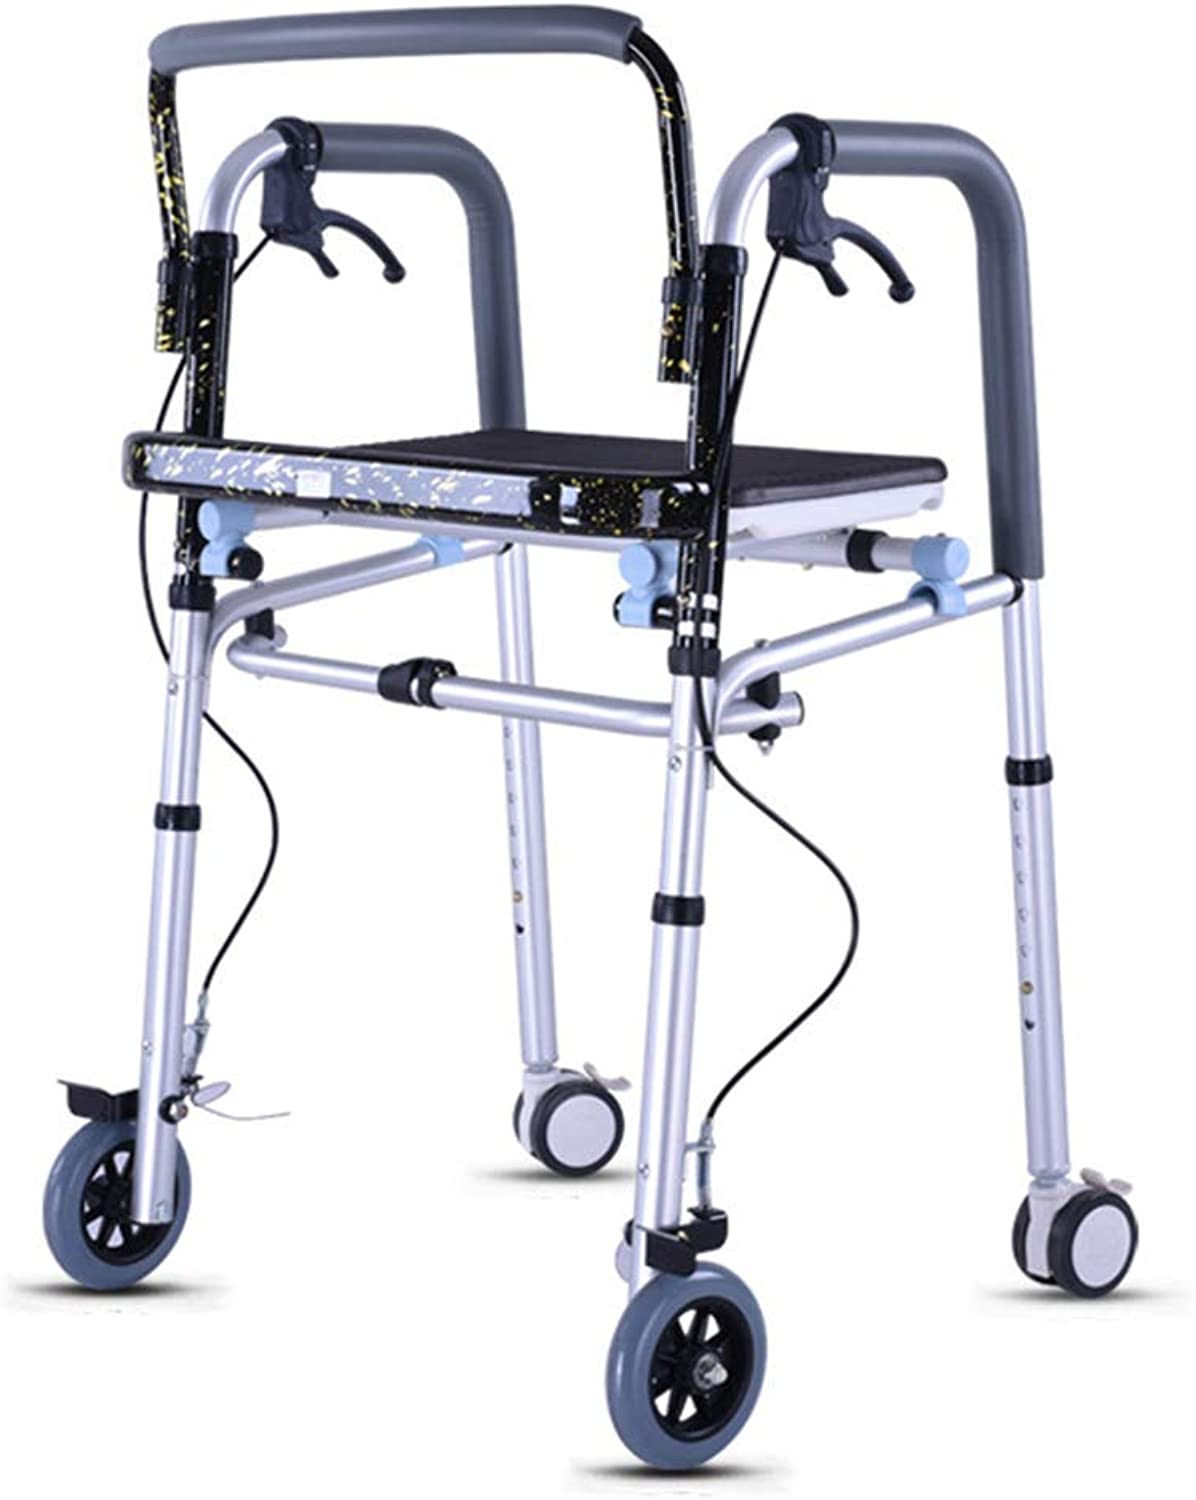 The Elderly Rehabilitation Walker Can Be Folded Easy to Carry The Brakes Ensure Safety Help The Patient with Severe Lower Limb Function Damage Standing and Walking